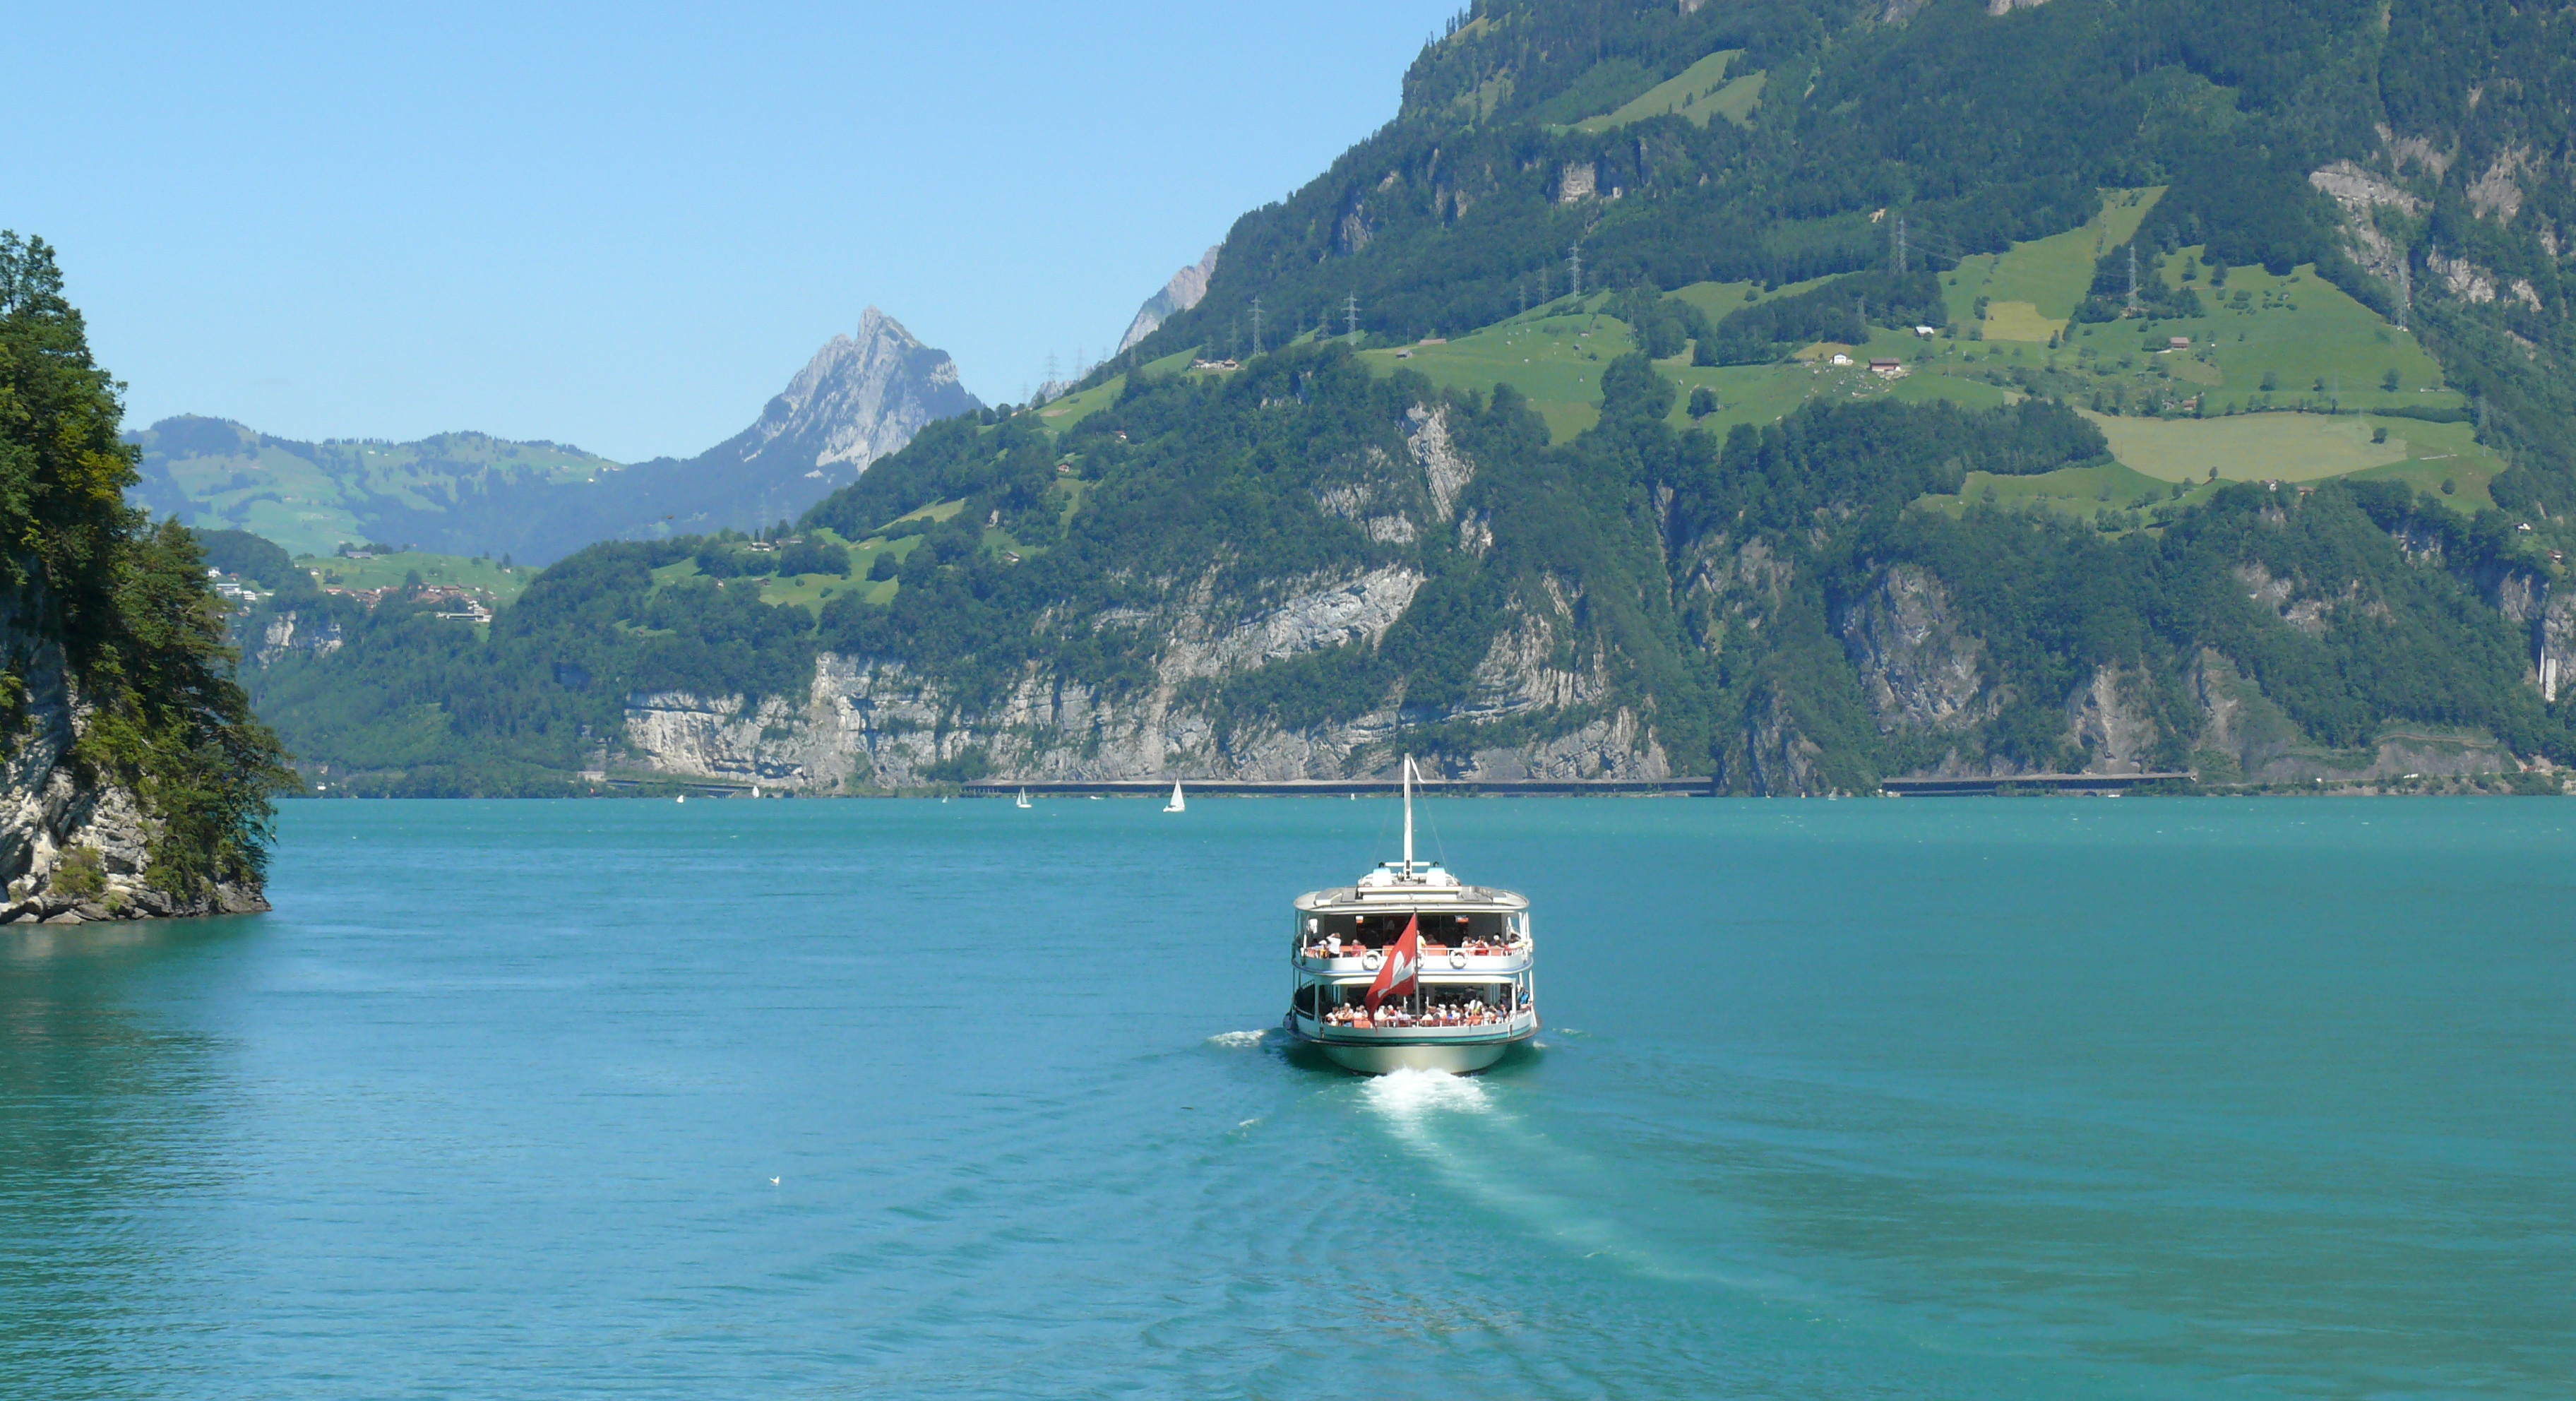 http://upload.wikimedia.org/wikipedia/commons/c/c2/Lake_lucerne.JPG